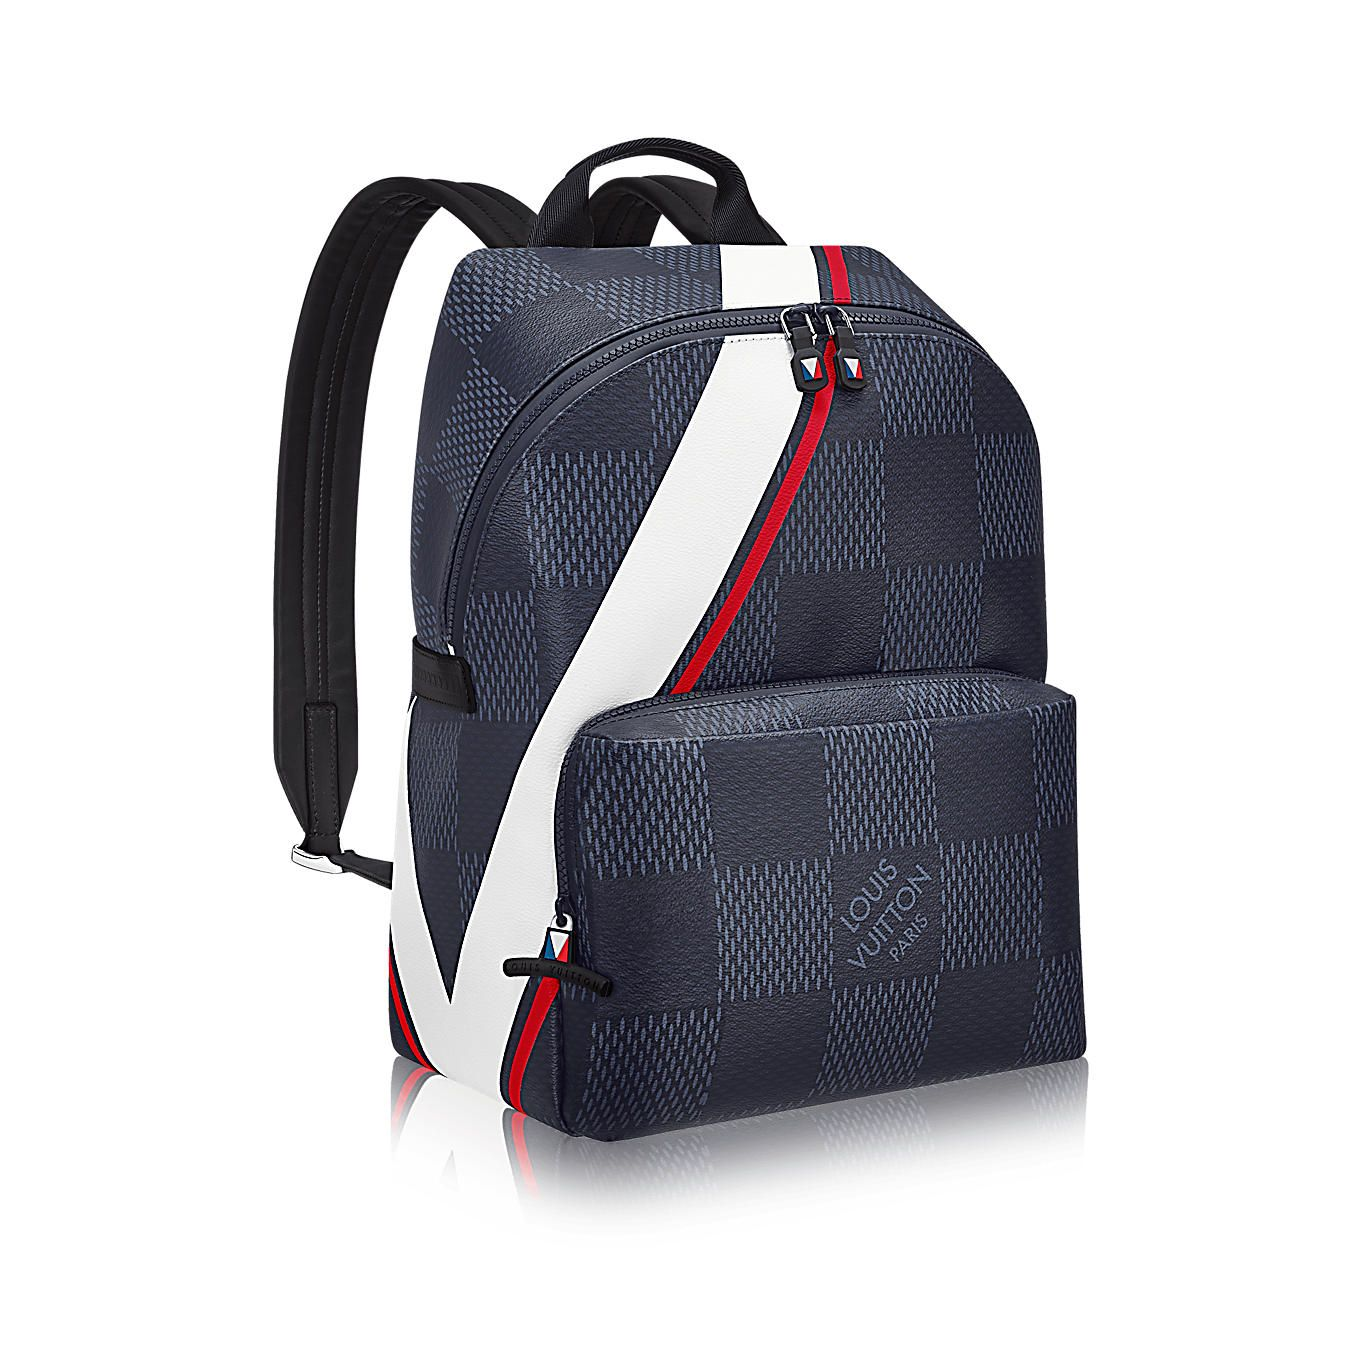 39a06714c8e5 Apollo Backpack Damier Cobalt Canvas in Men s America s Cup 2017  collections by Louis Vuitton